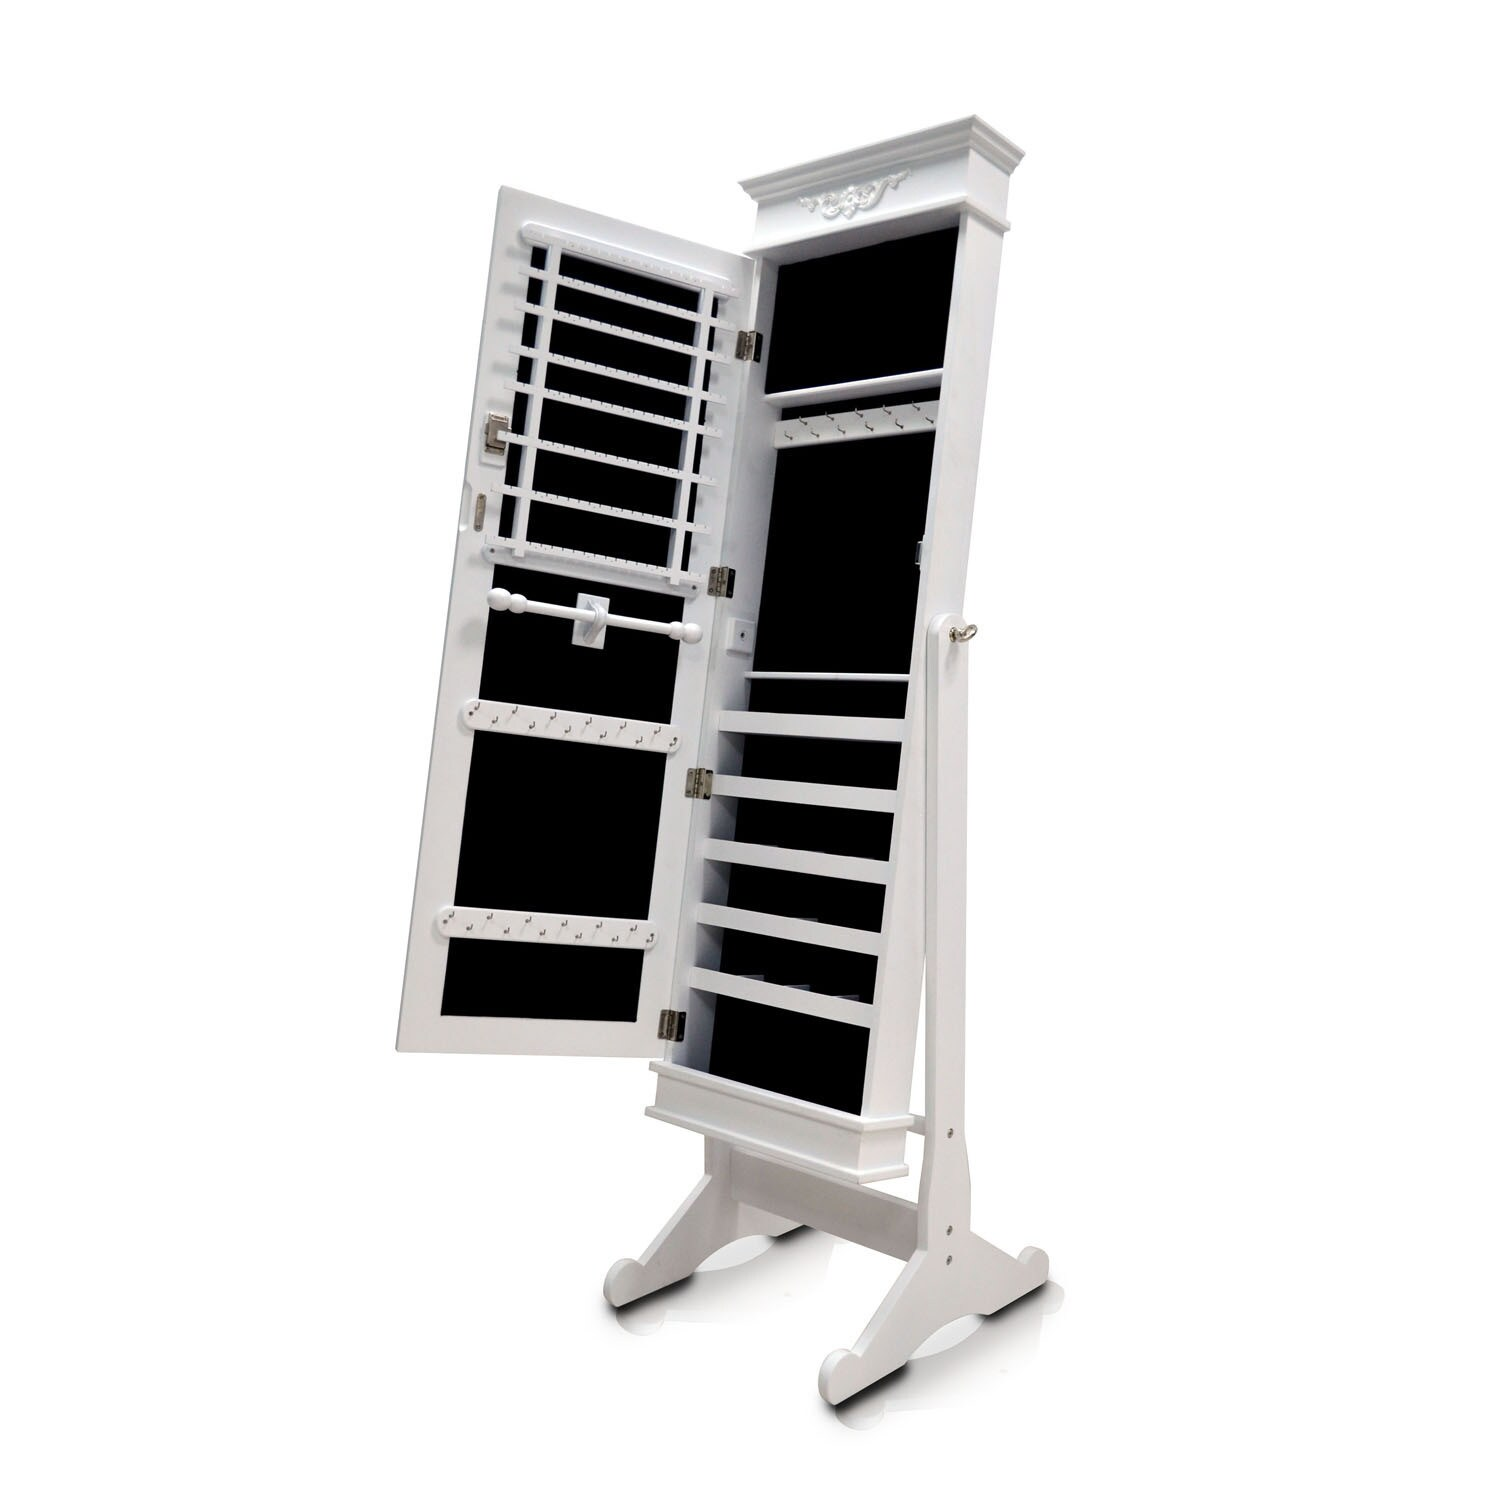 free stand premium cabinet full box shipping home garden size mirror cheval white jewelry case overstock armoire product today storage organizer